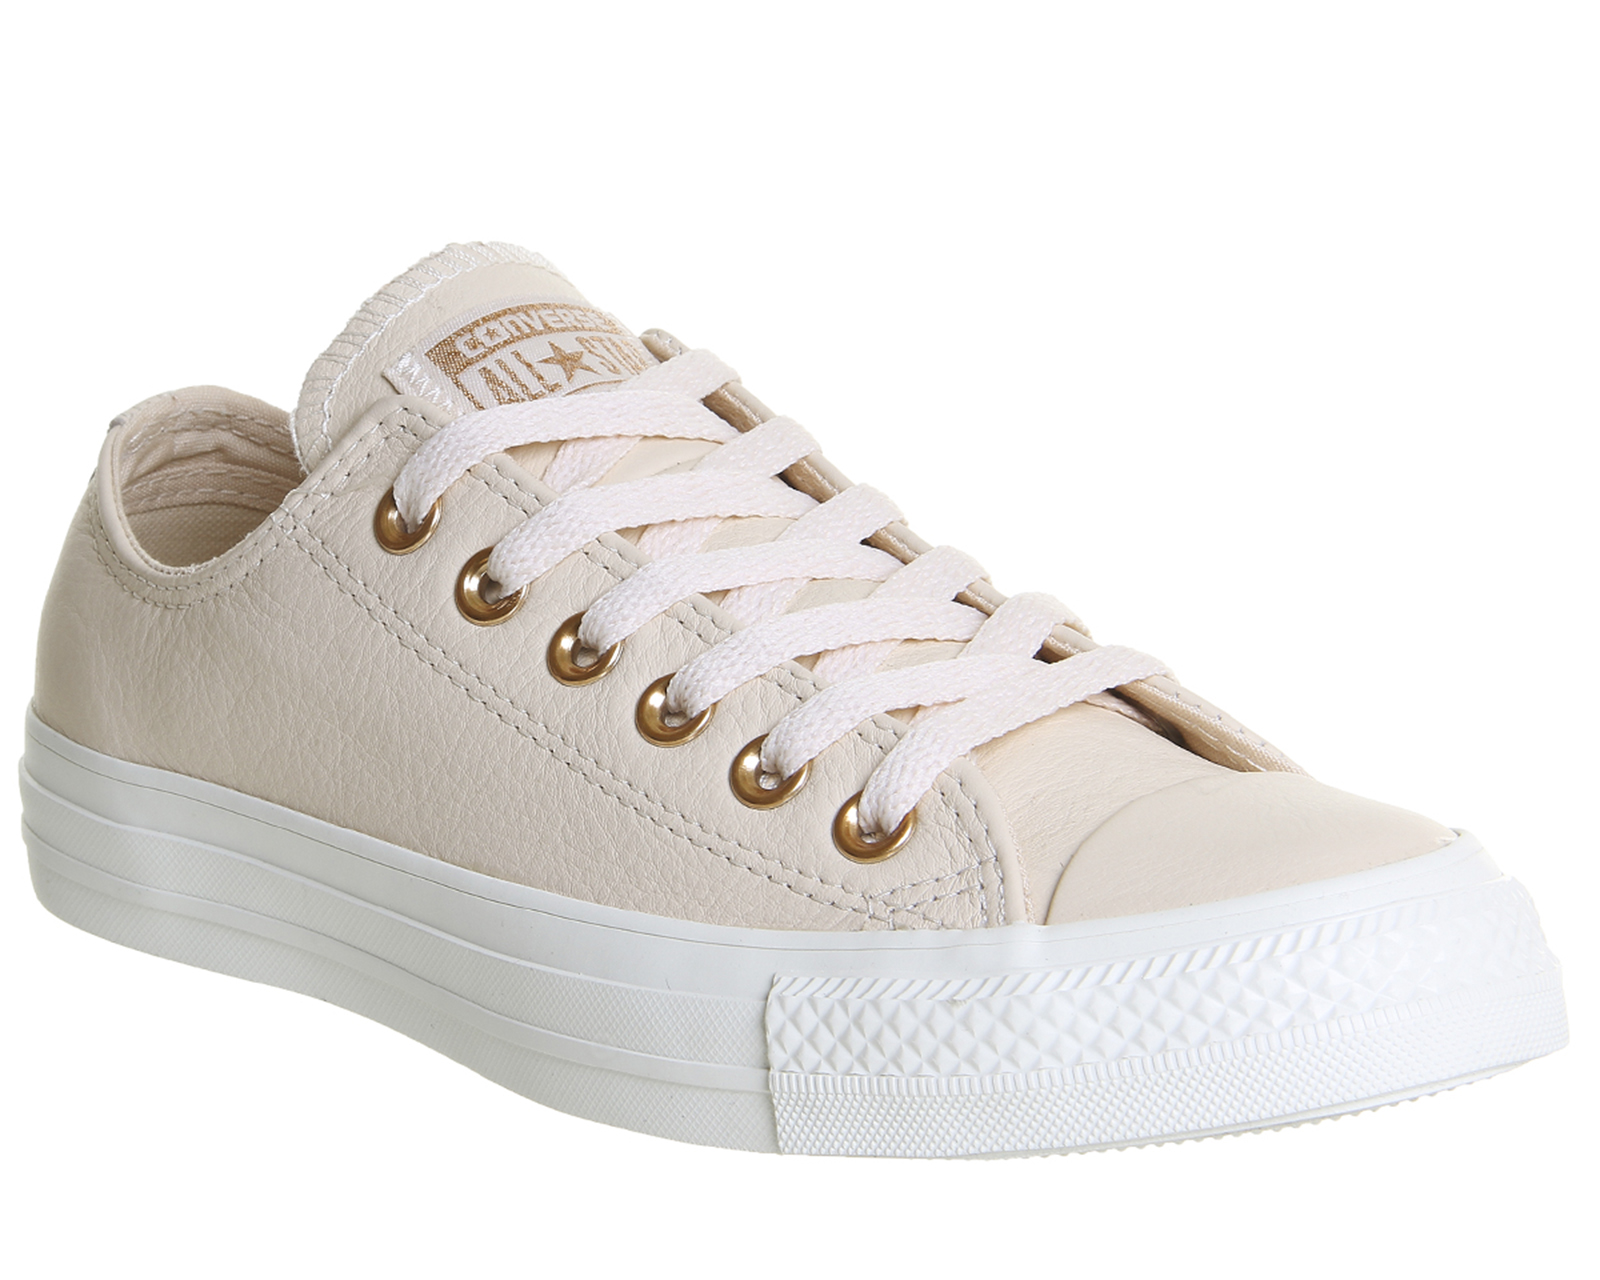 DONNA CONVERSE ALL STAR BASSA IN PELLE Egret PASTELLO ROSA MARRONE Blush ORO